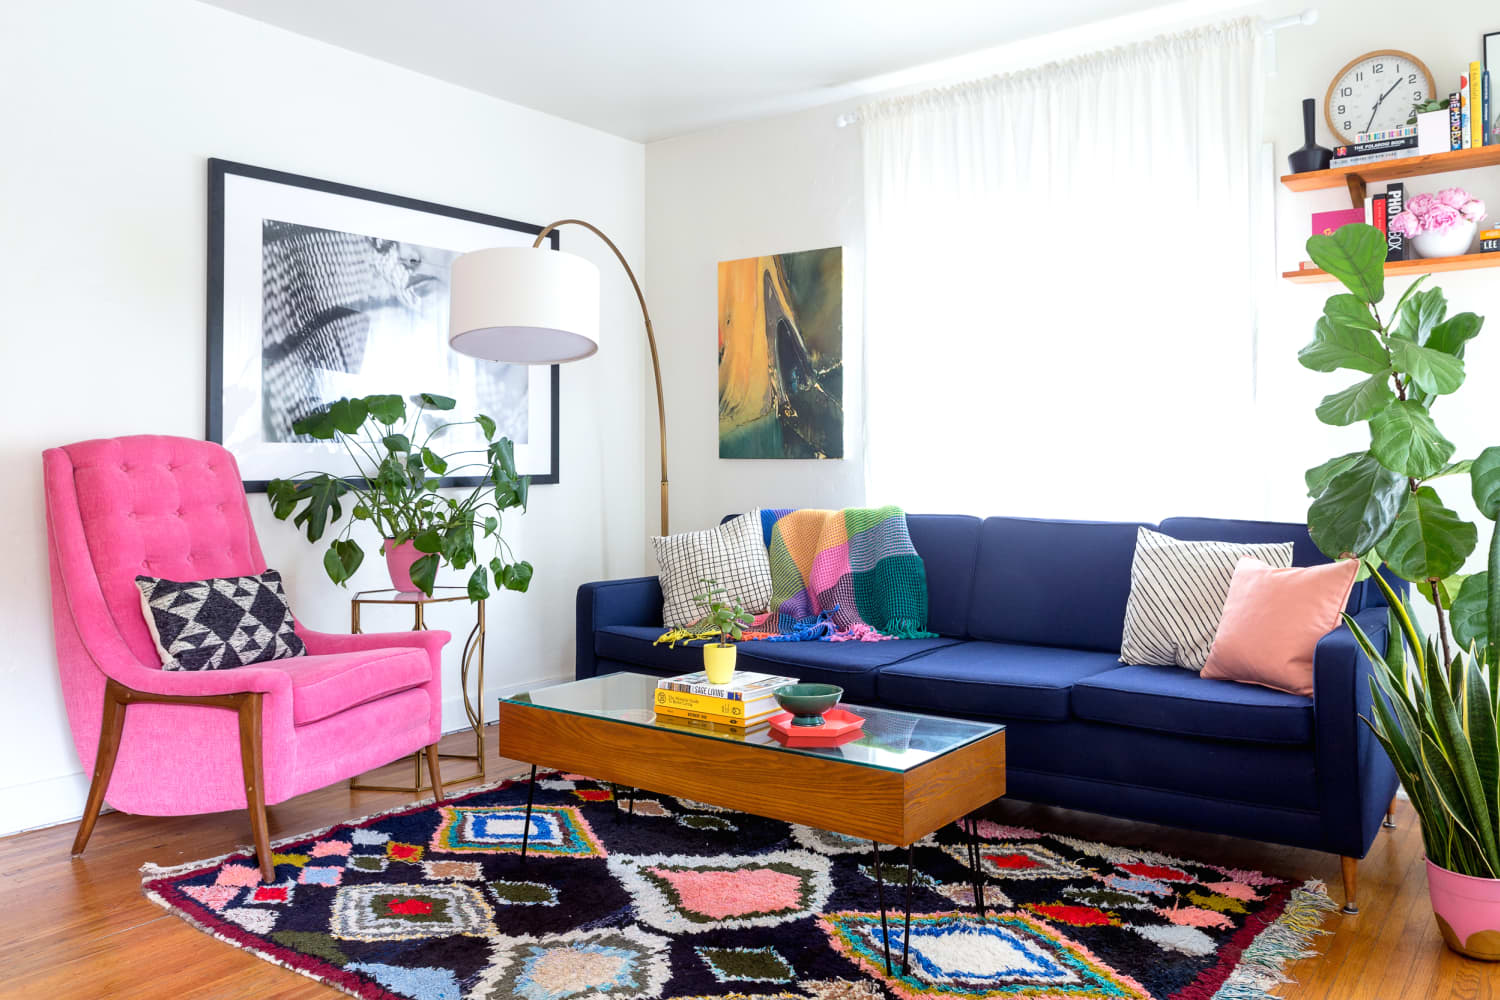 Rugs USA Has a Huge Selection of Boho Rugs on Sale Right Now—Here Are Our Faves